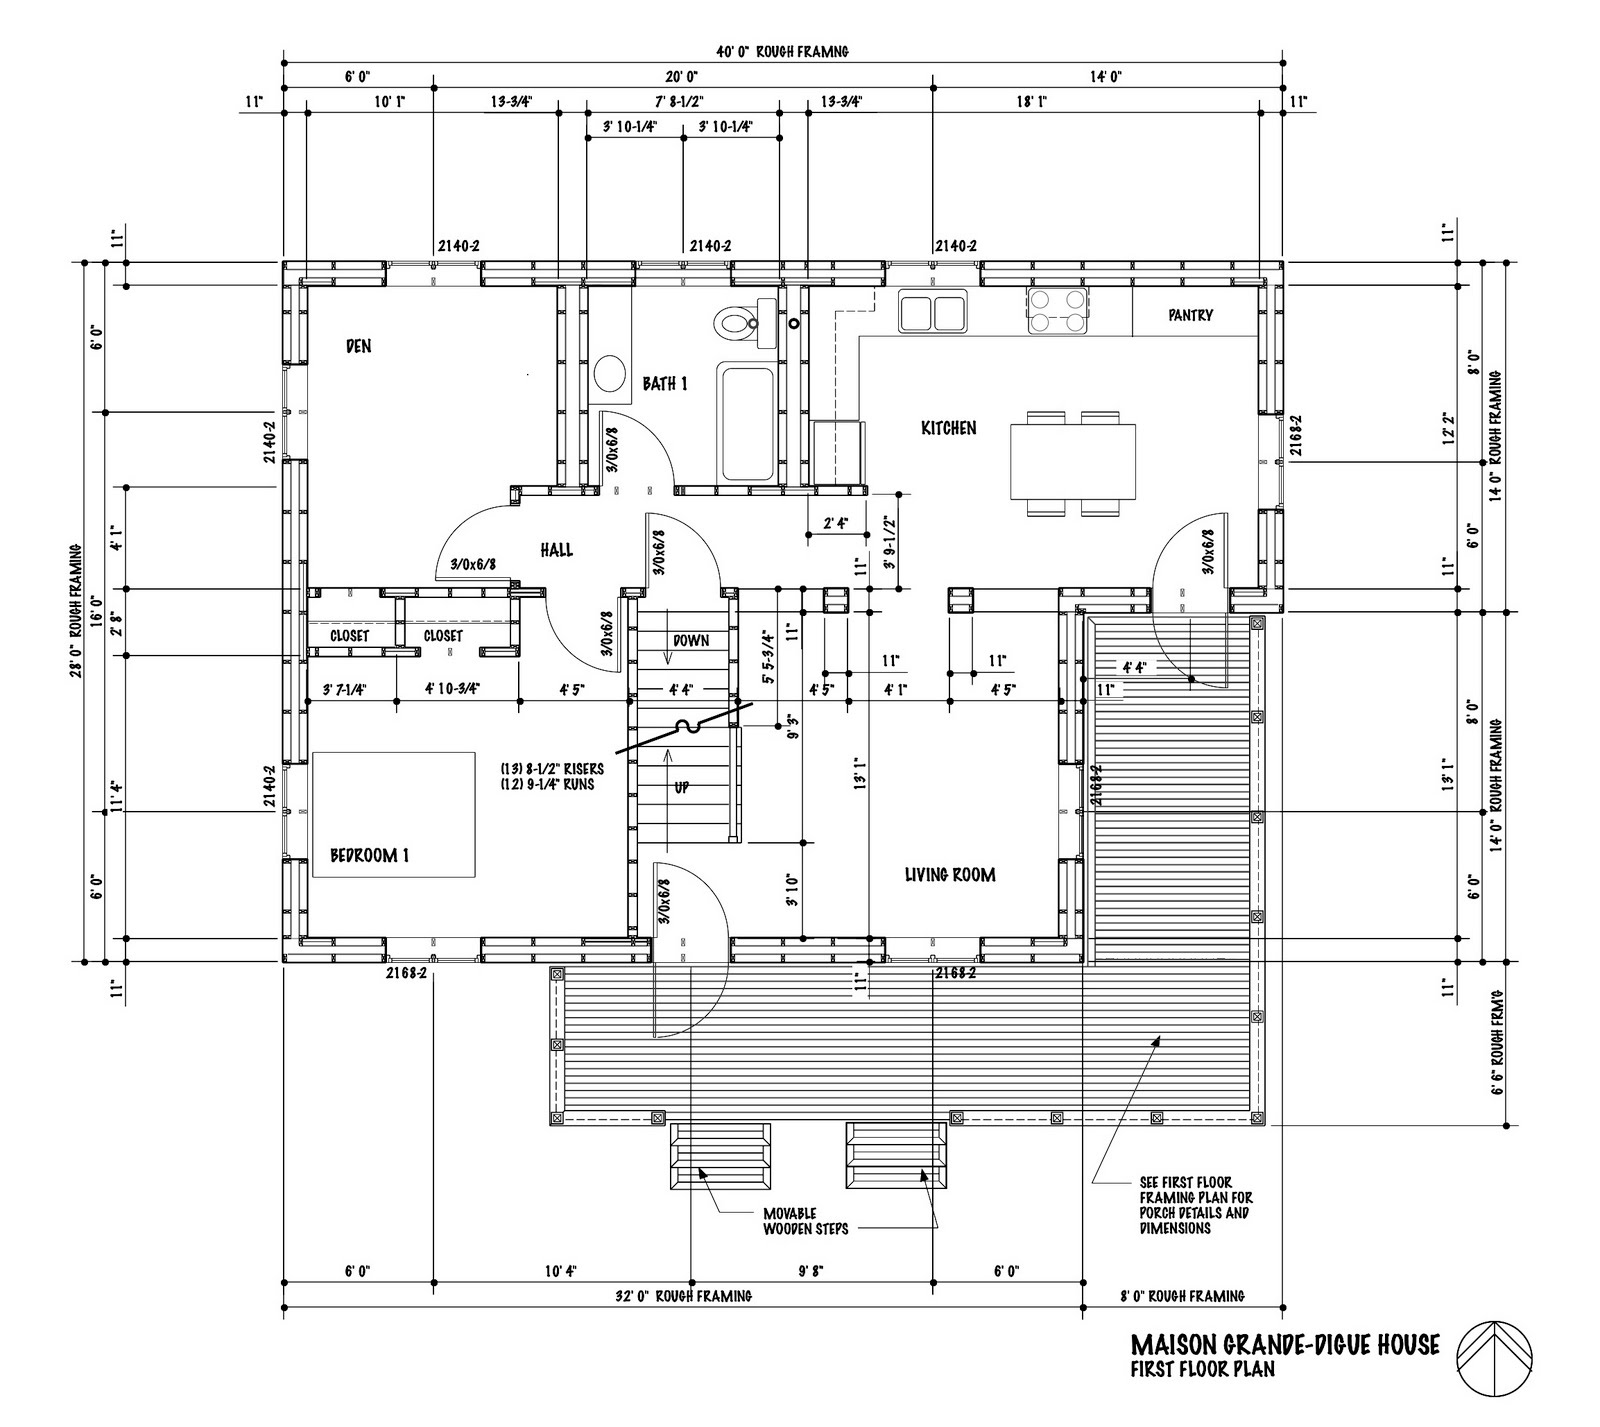 House floor plans with dimensions house floor plans with for Plan with dimensions